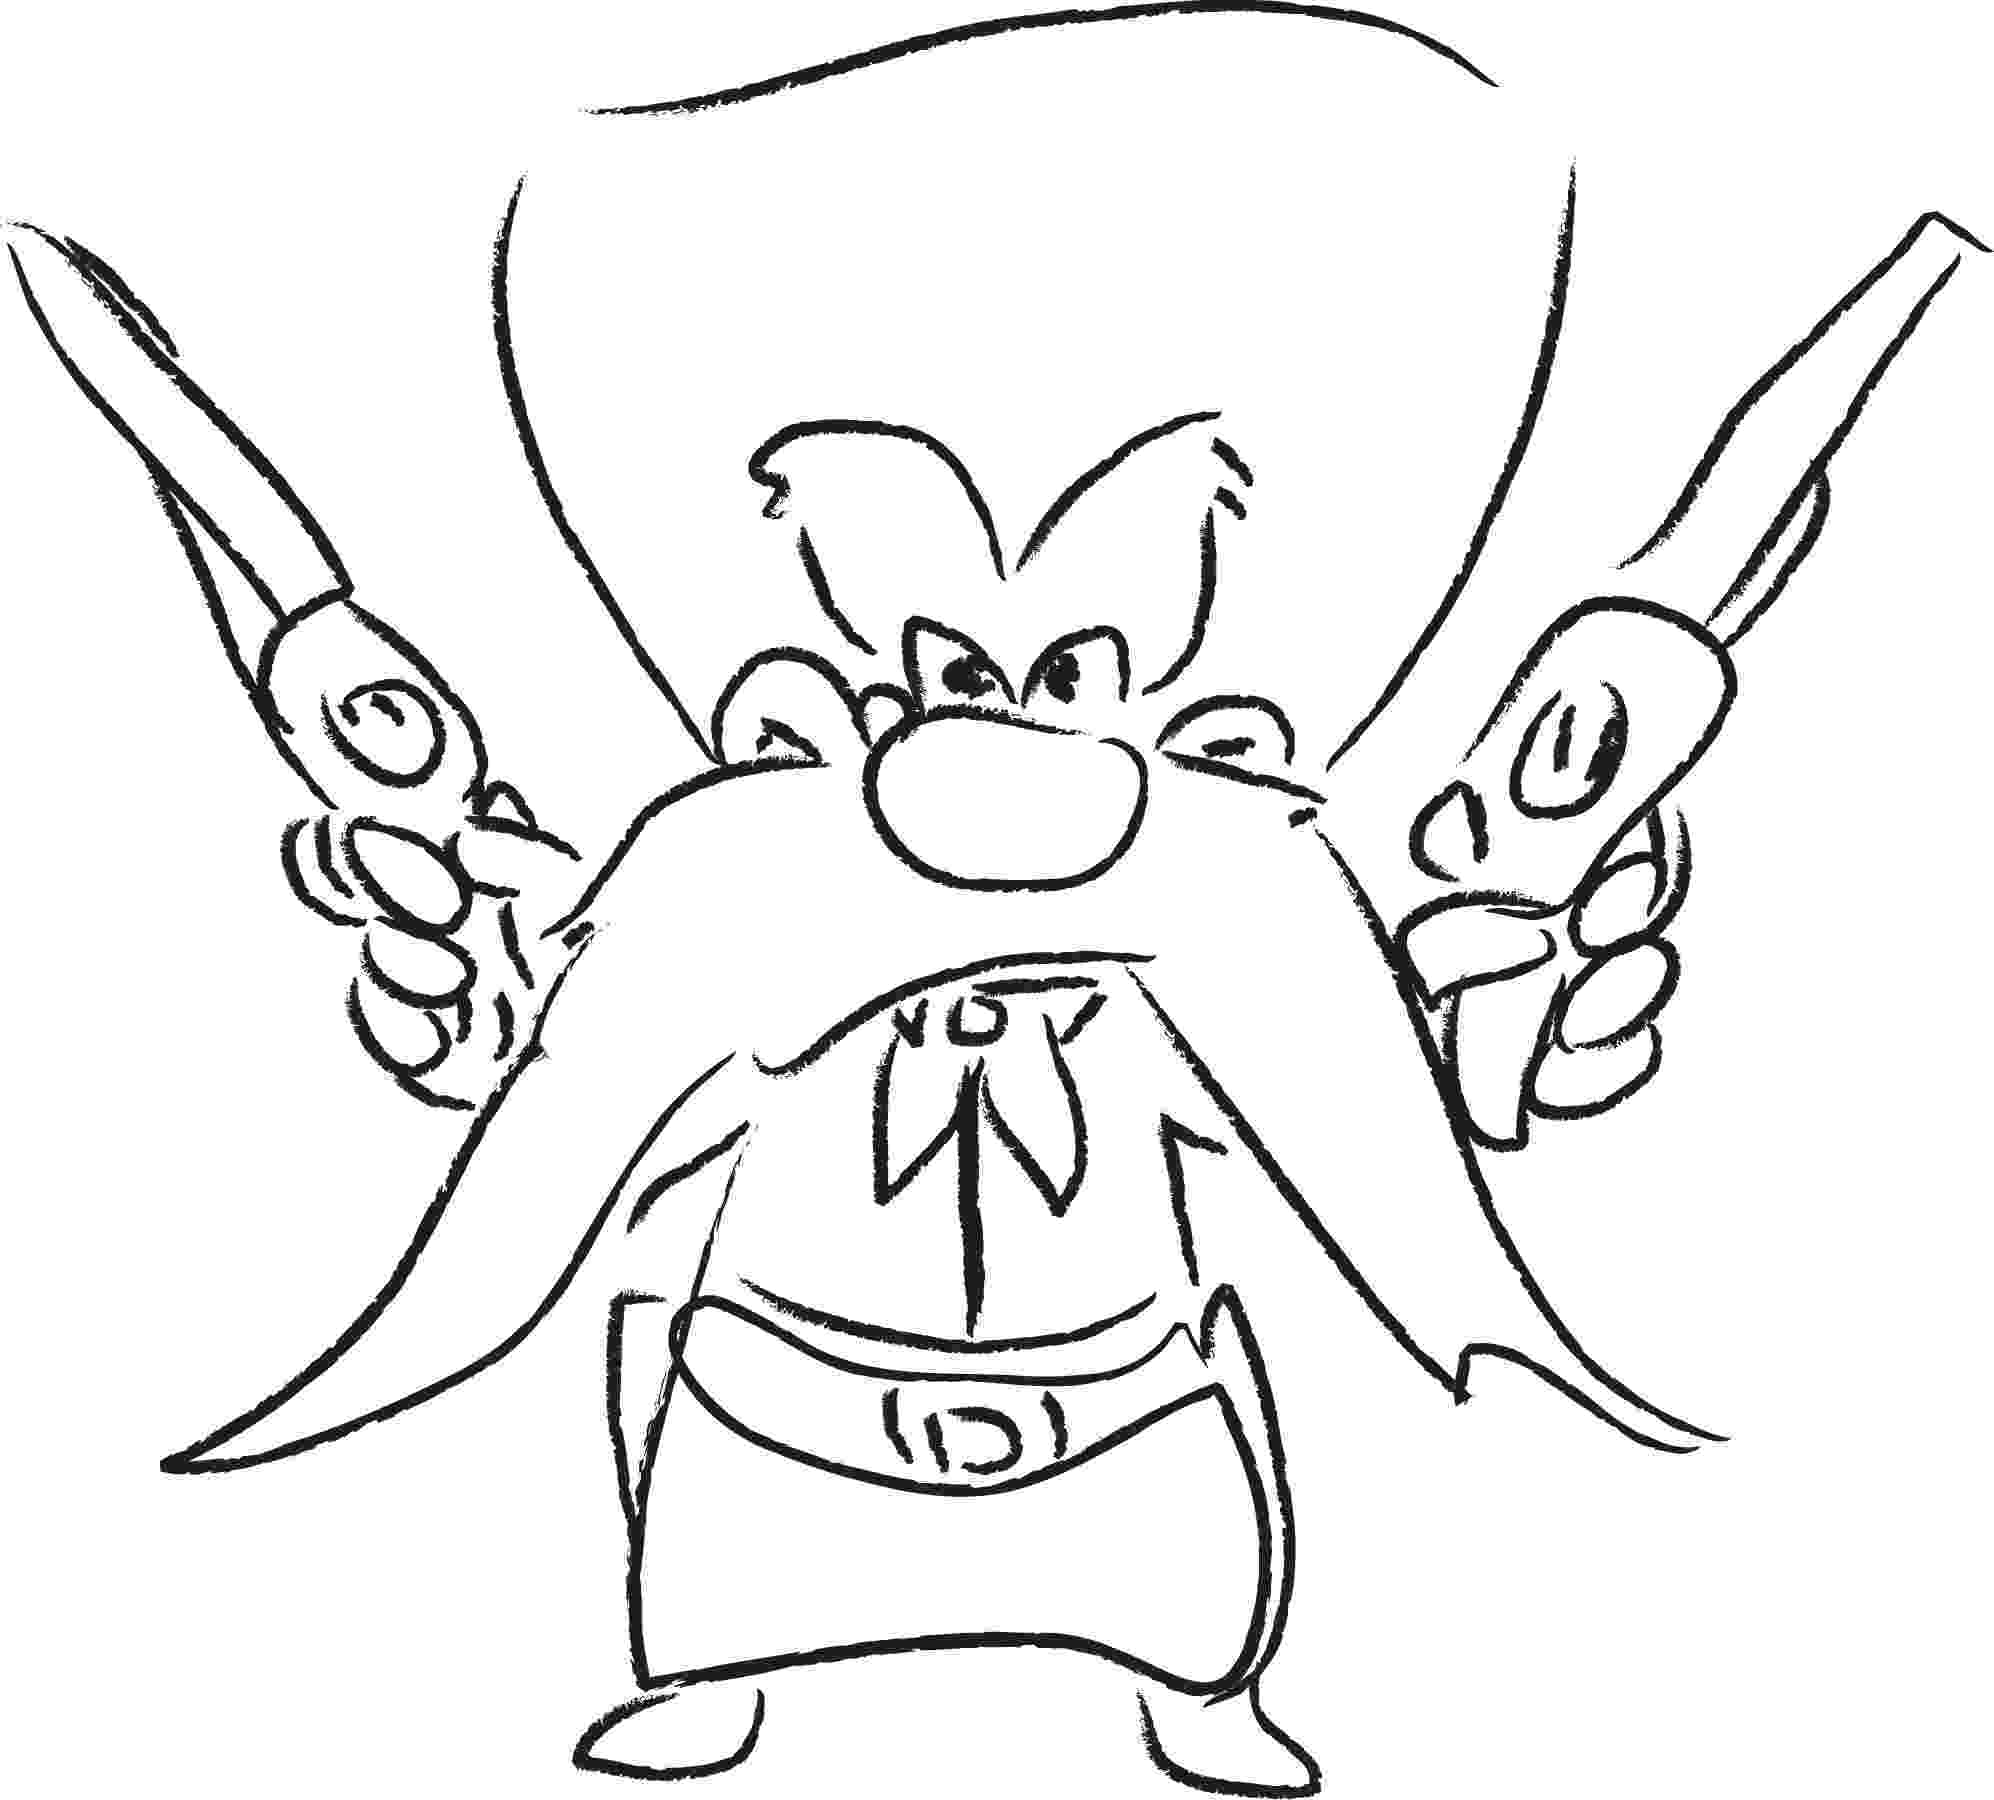 cartoon characters to sketch how to draw a graffiti character by wizard youtube characters sketch cartoon to